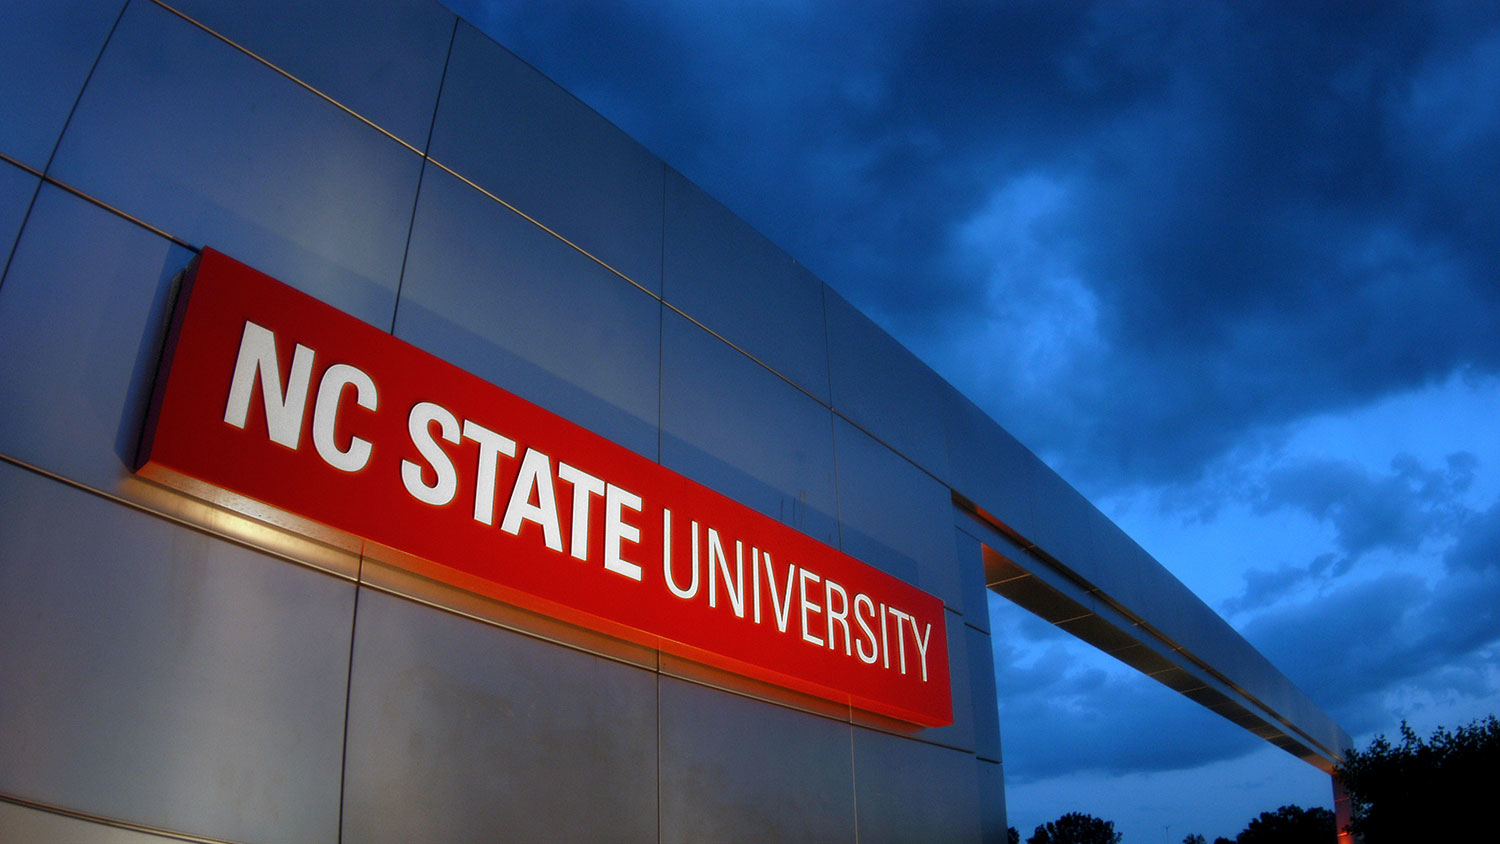 NC State gateway at sunset - Grant Will Fund Climate Resilience Strategies for Frontline Communities in the Carolinas - Forestry and Environmental Resources NC State University